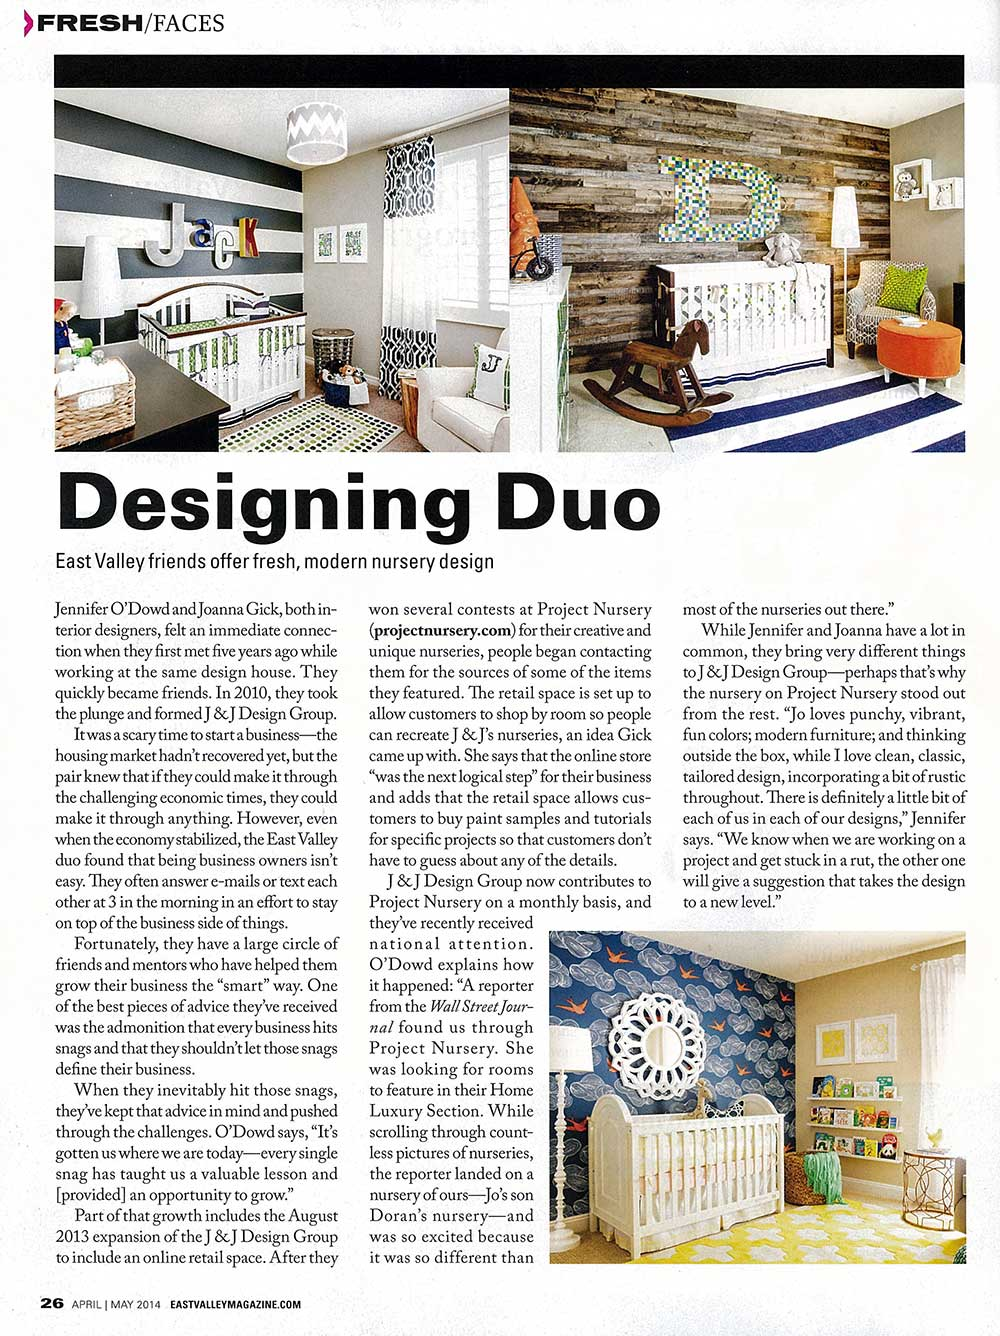 J and J Design Group - East Valley Magazine Press